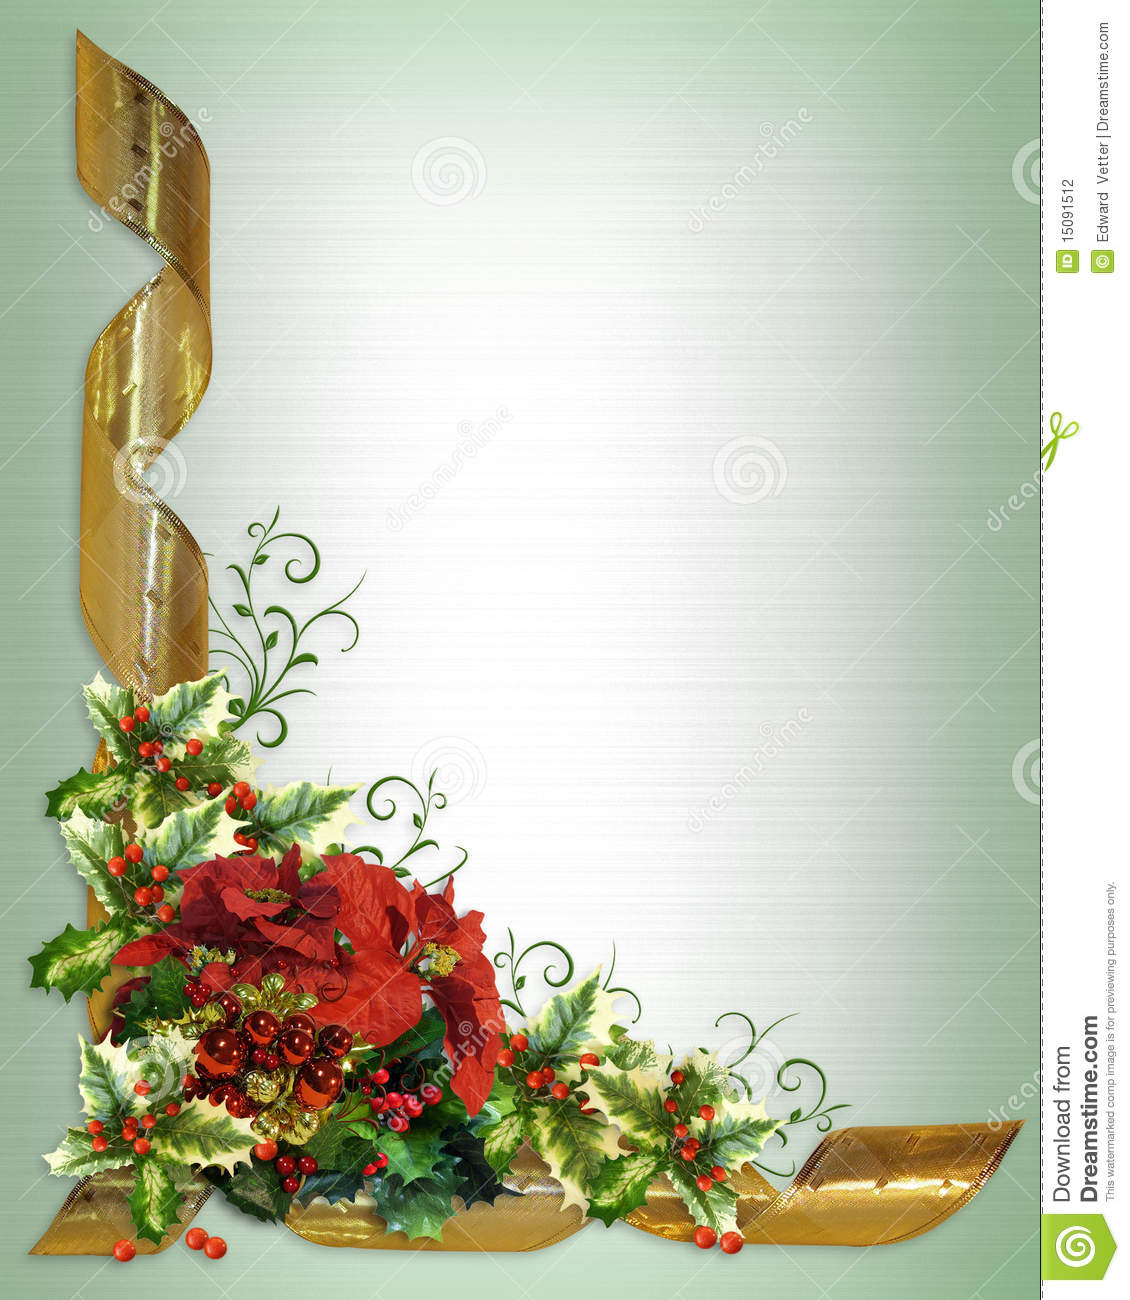 Christmas Card Border Holly Floral Stock Photography - Image: 15091512